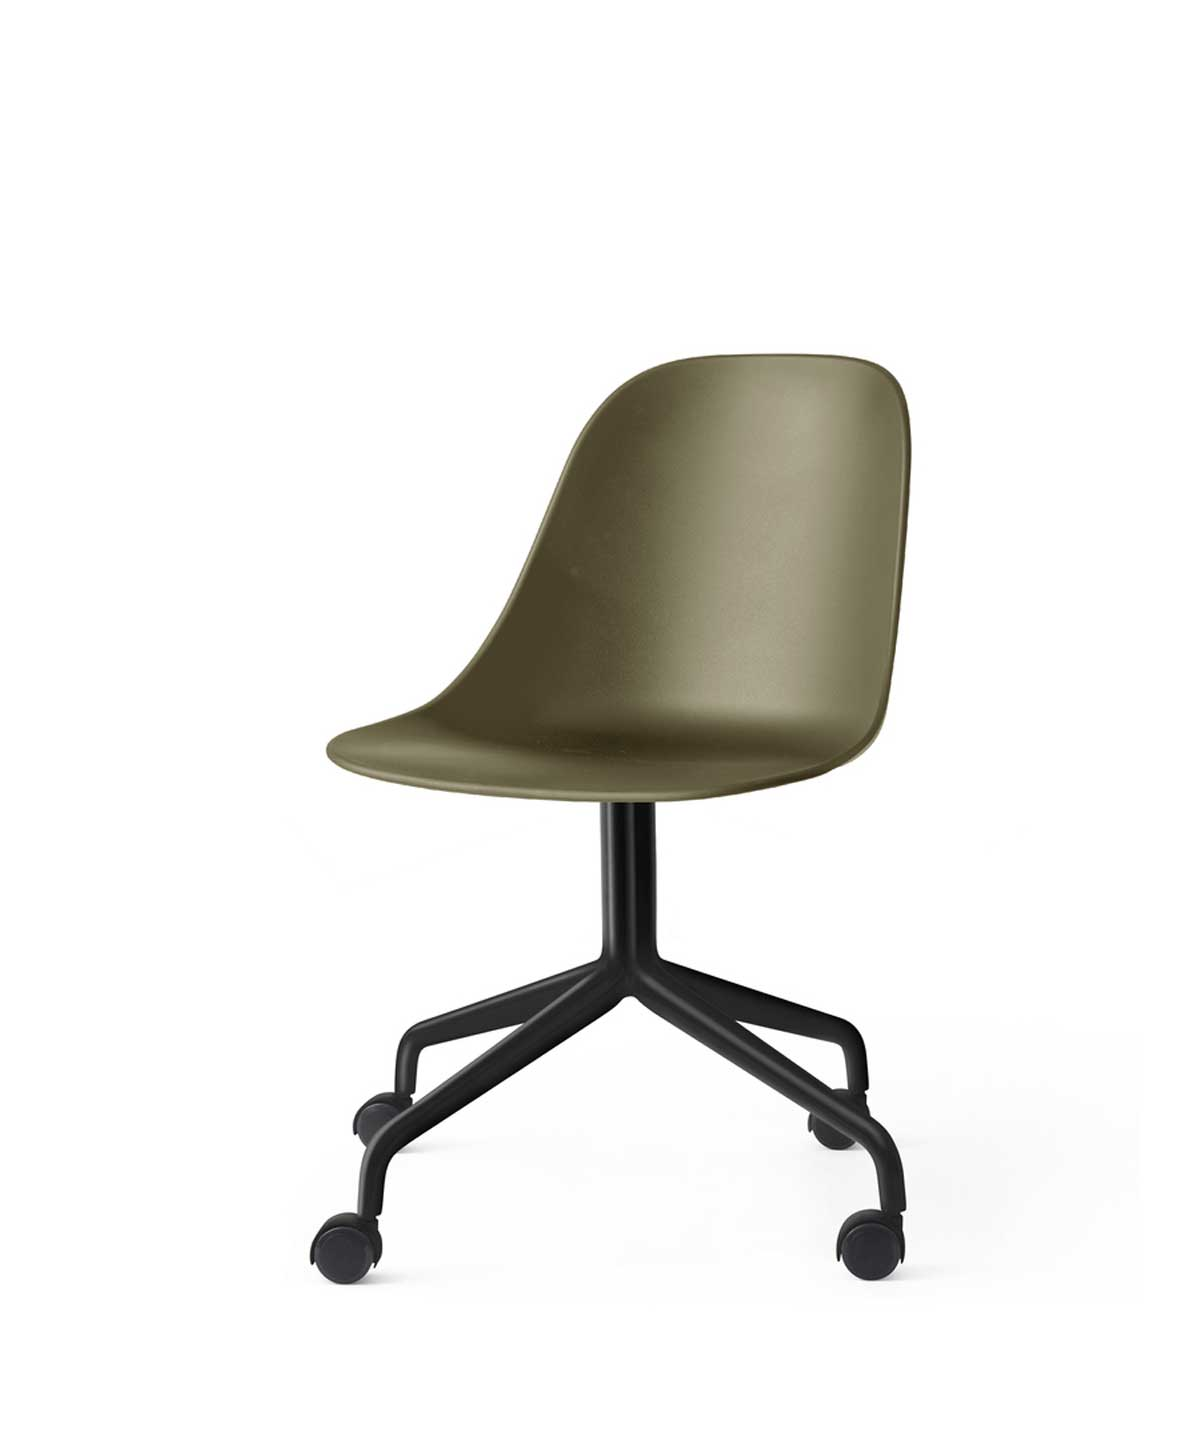 Harbour Side Office Chair with Casters, Plastic Shell